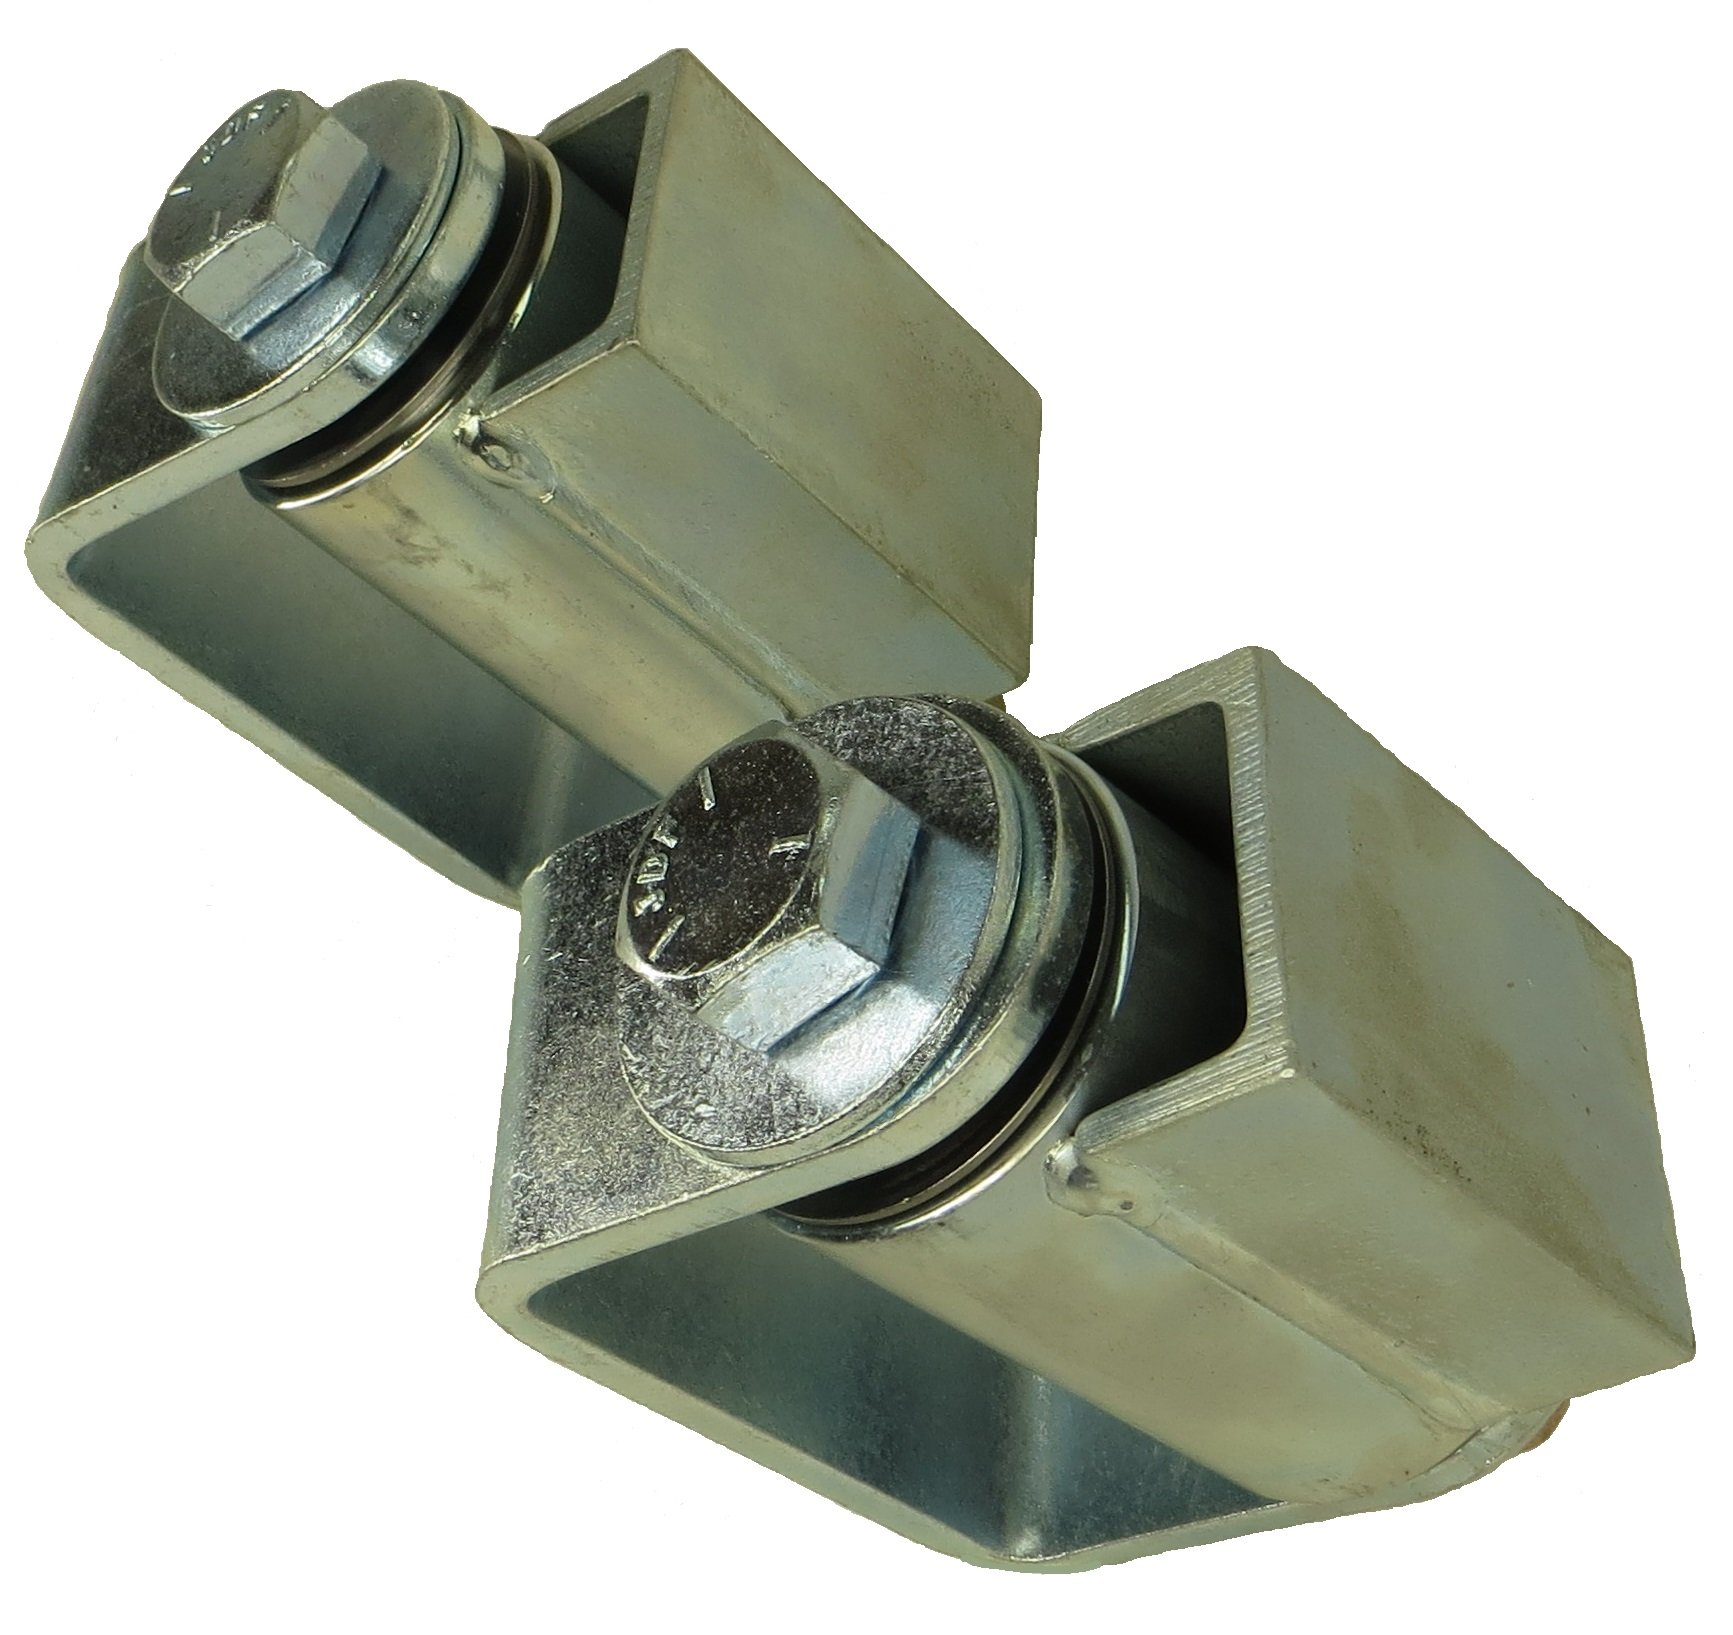 Fitt-Rite HBR-400 4'' Heavy Duty Adjustable Sealed Bearing Hinge (Pair)-MADE IN USA by Fitt-Rite